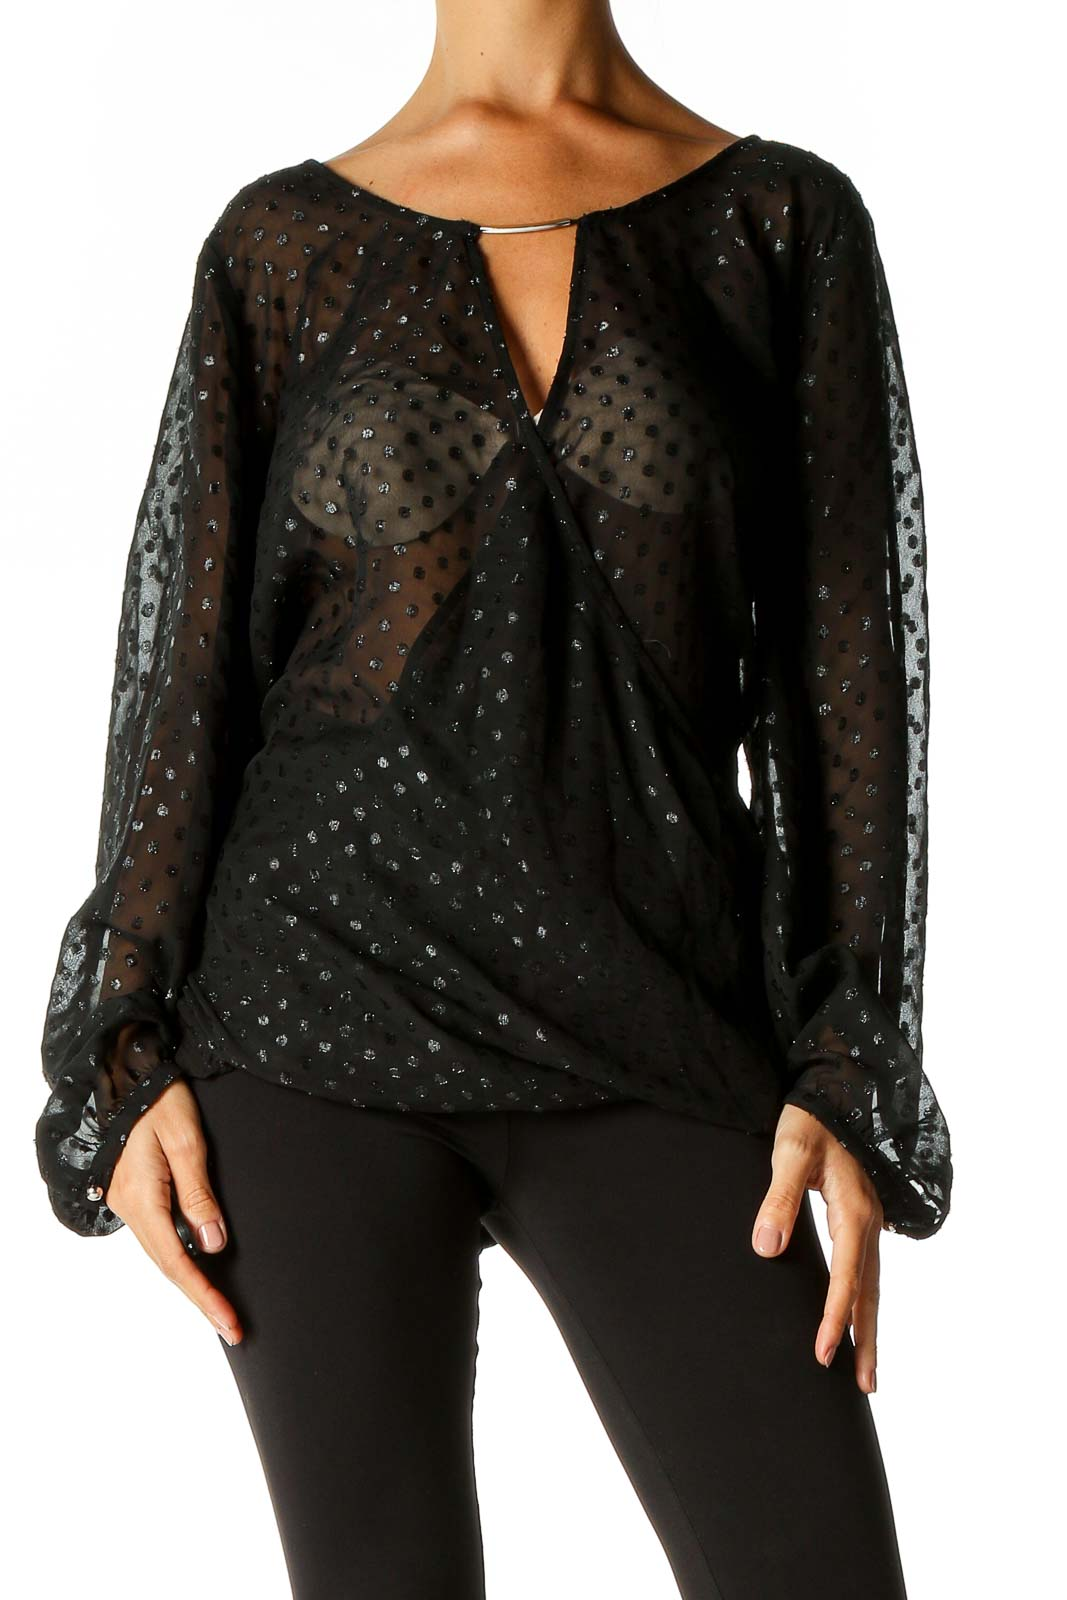 Black Textured Party Wear Blouse Front